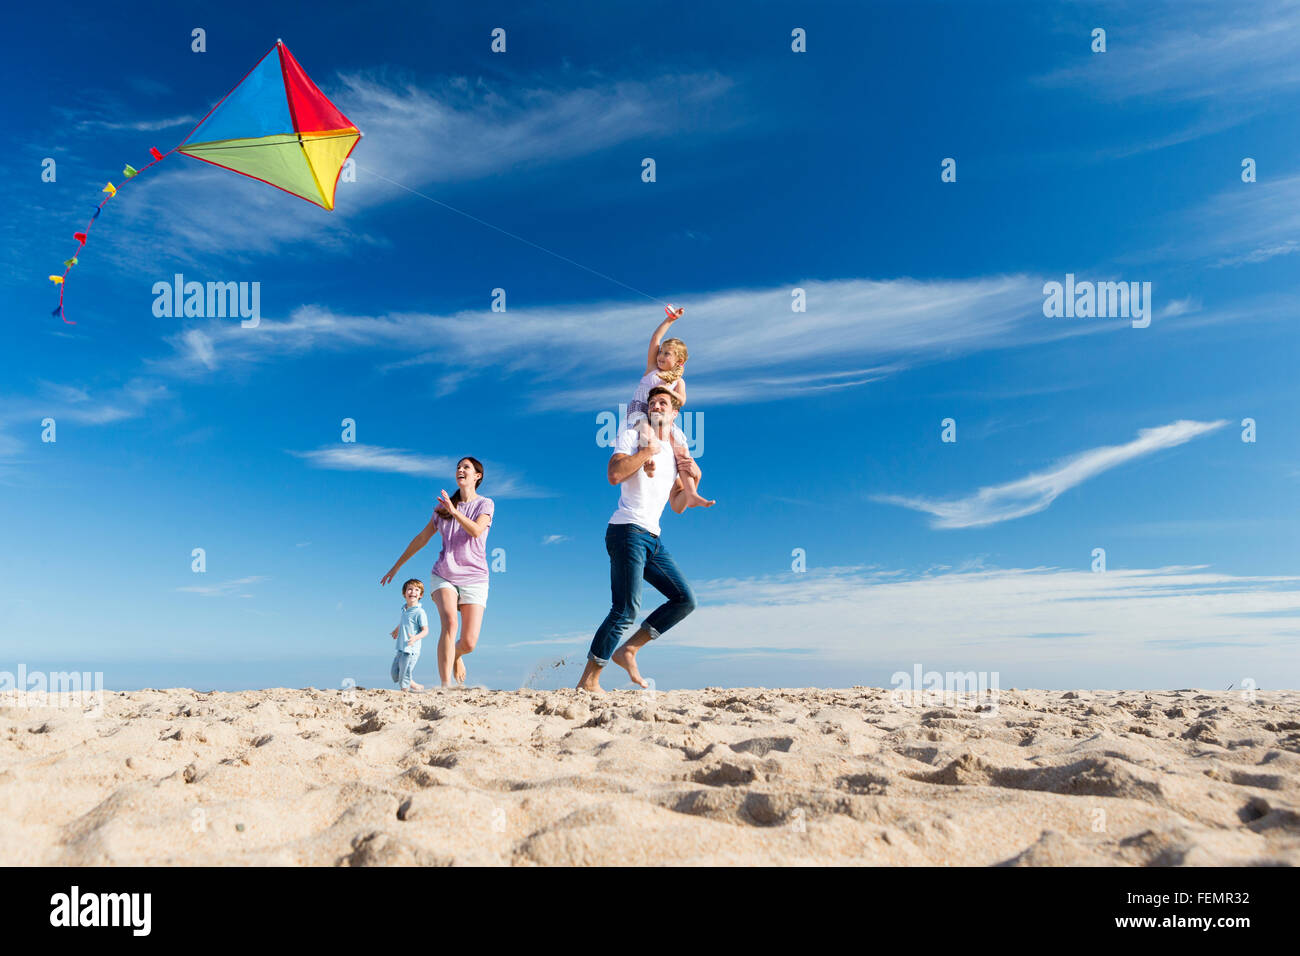 Family of four flying a kite on the beach. - Stock Image